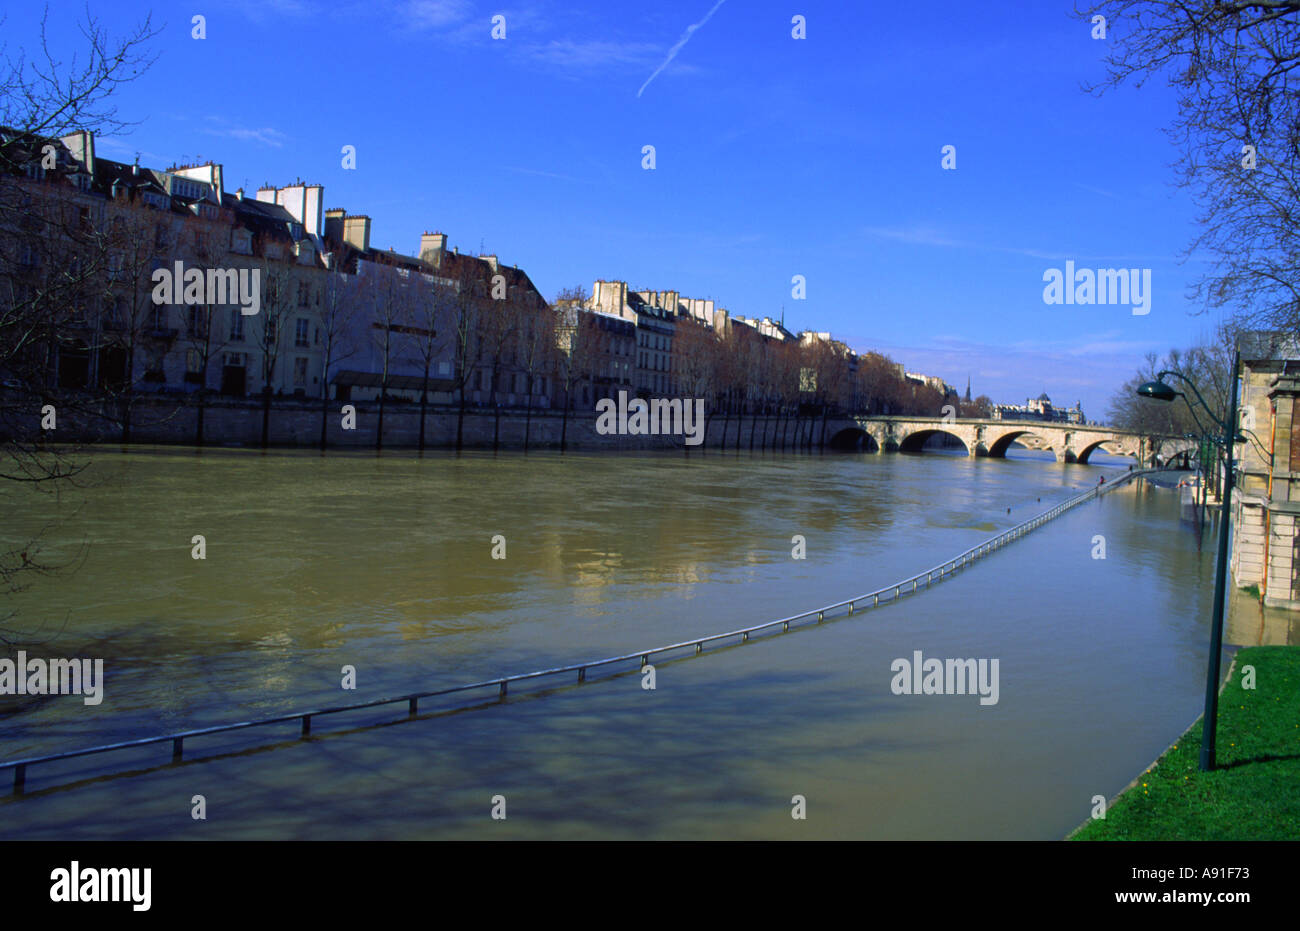 Inundations at Paris France  - Stock Image